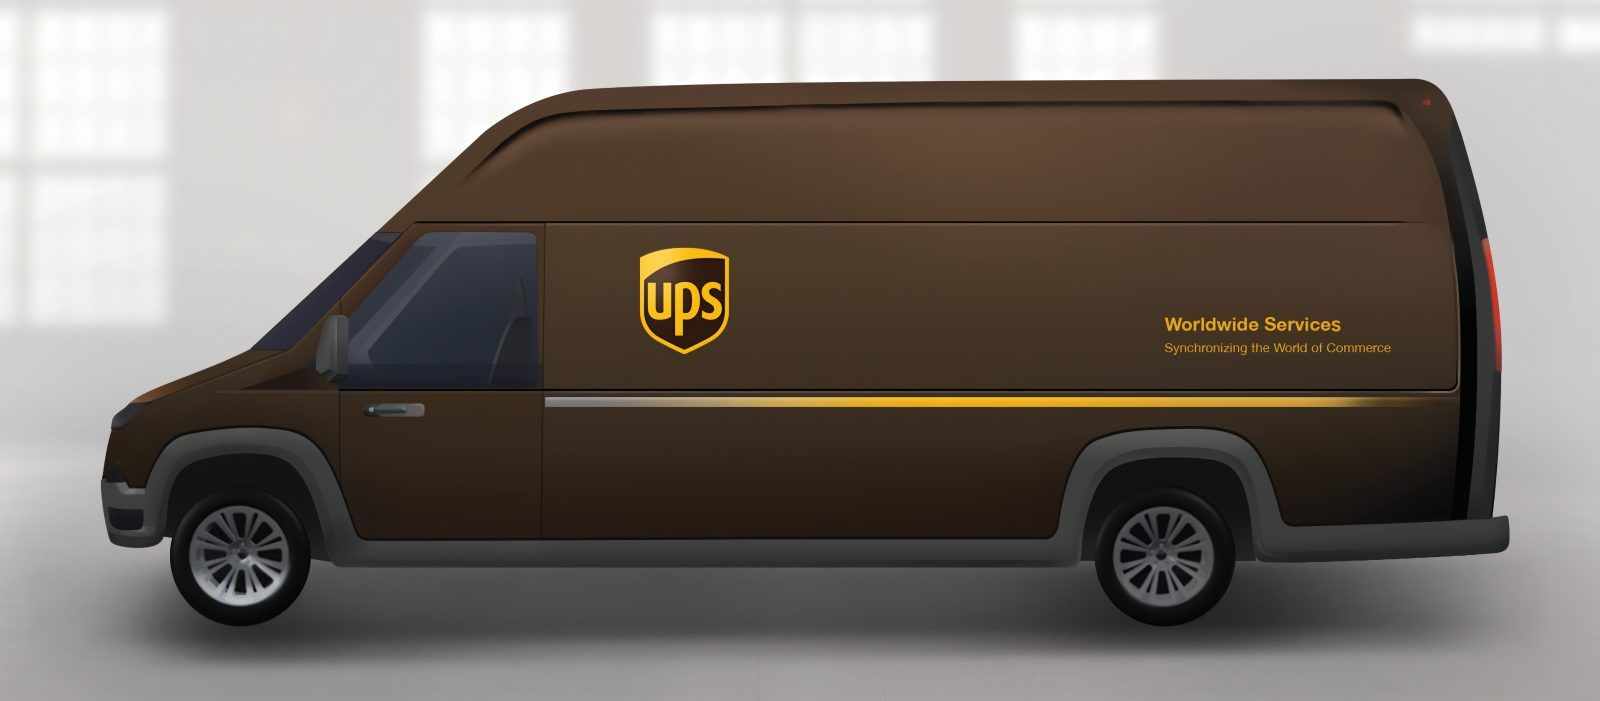 Ups Is Buying A Fleet Of 1 000 Electric Vans From Workhorse